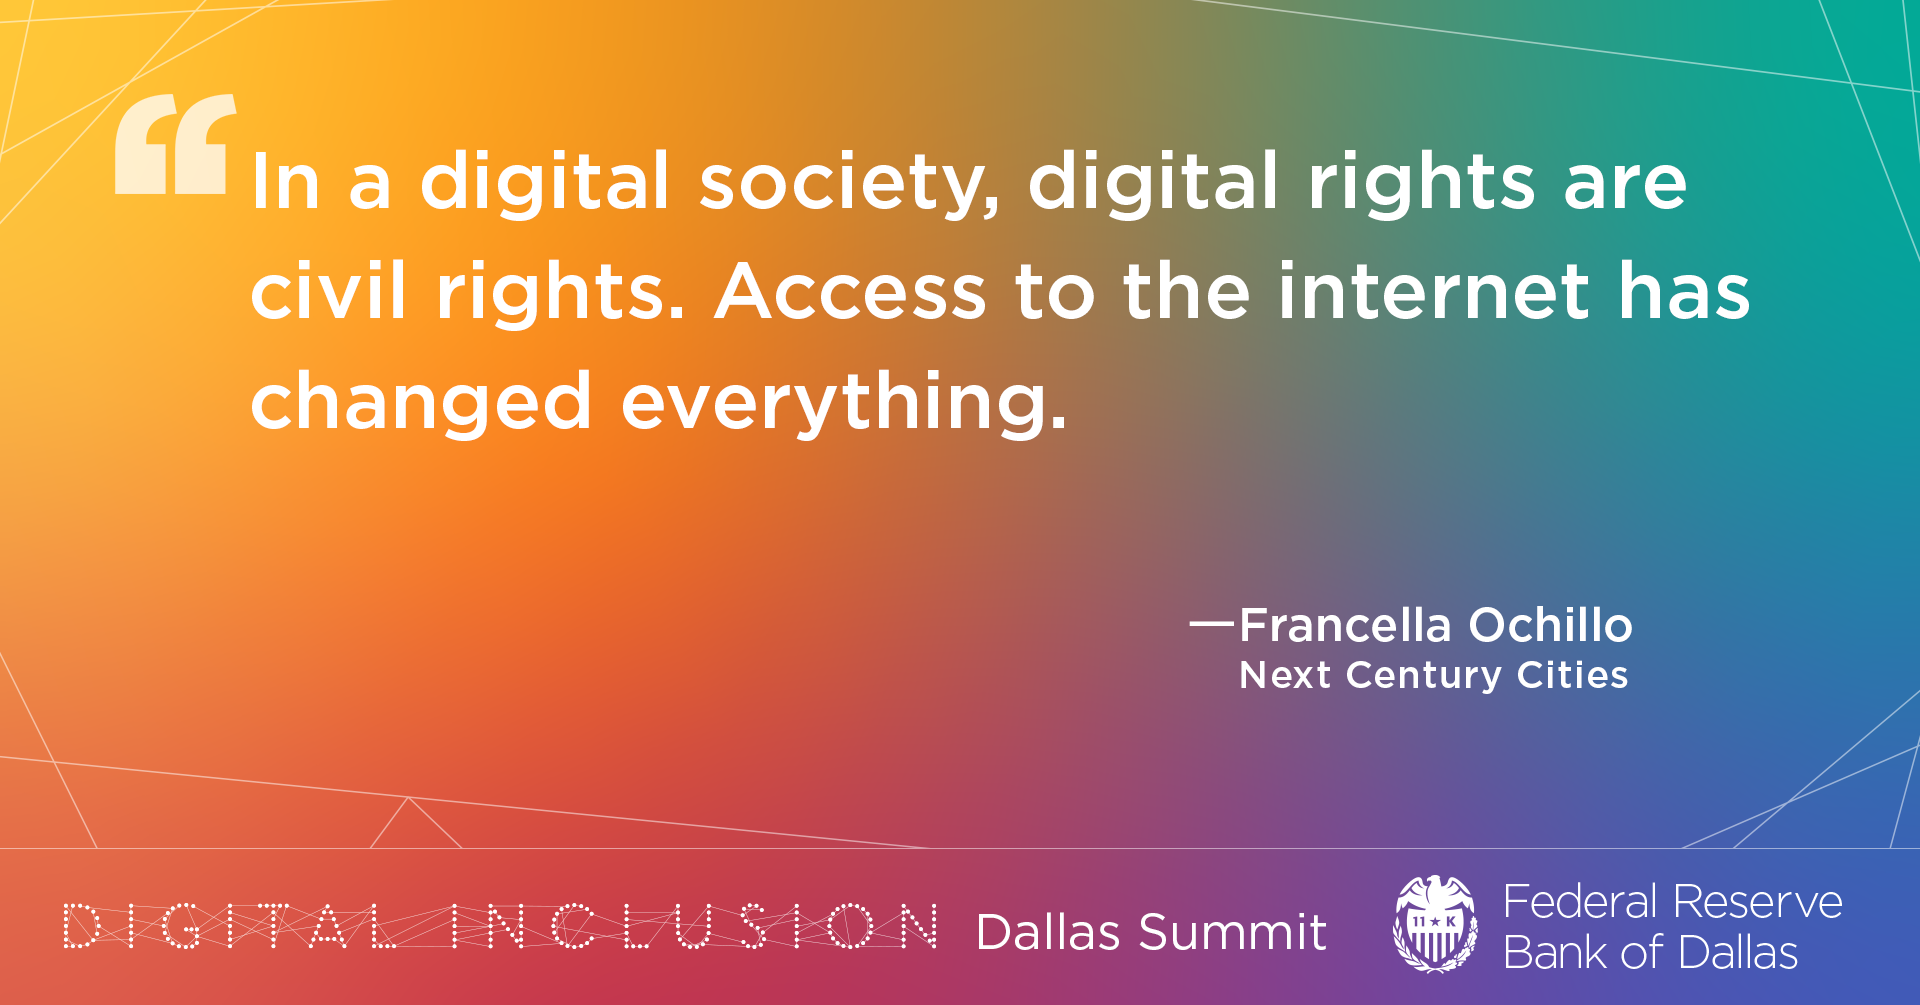 Keynote speaker Francella Ochillo emphasized the critical need for digital equity